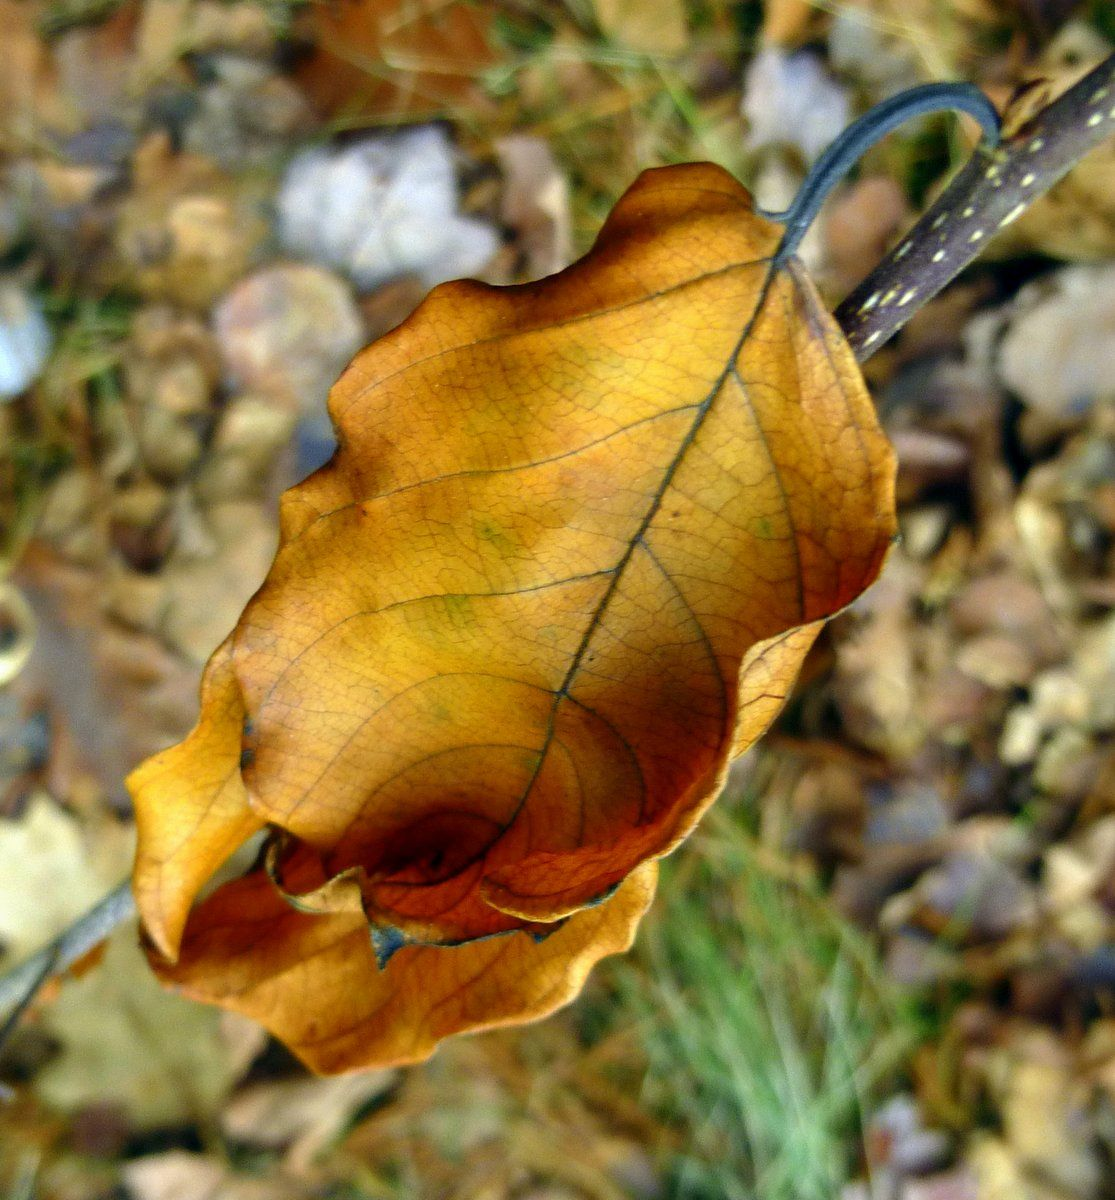 Things I've Seen - January 7, 2015 by New Hampshire Garden Solutions